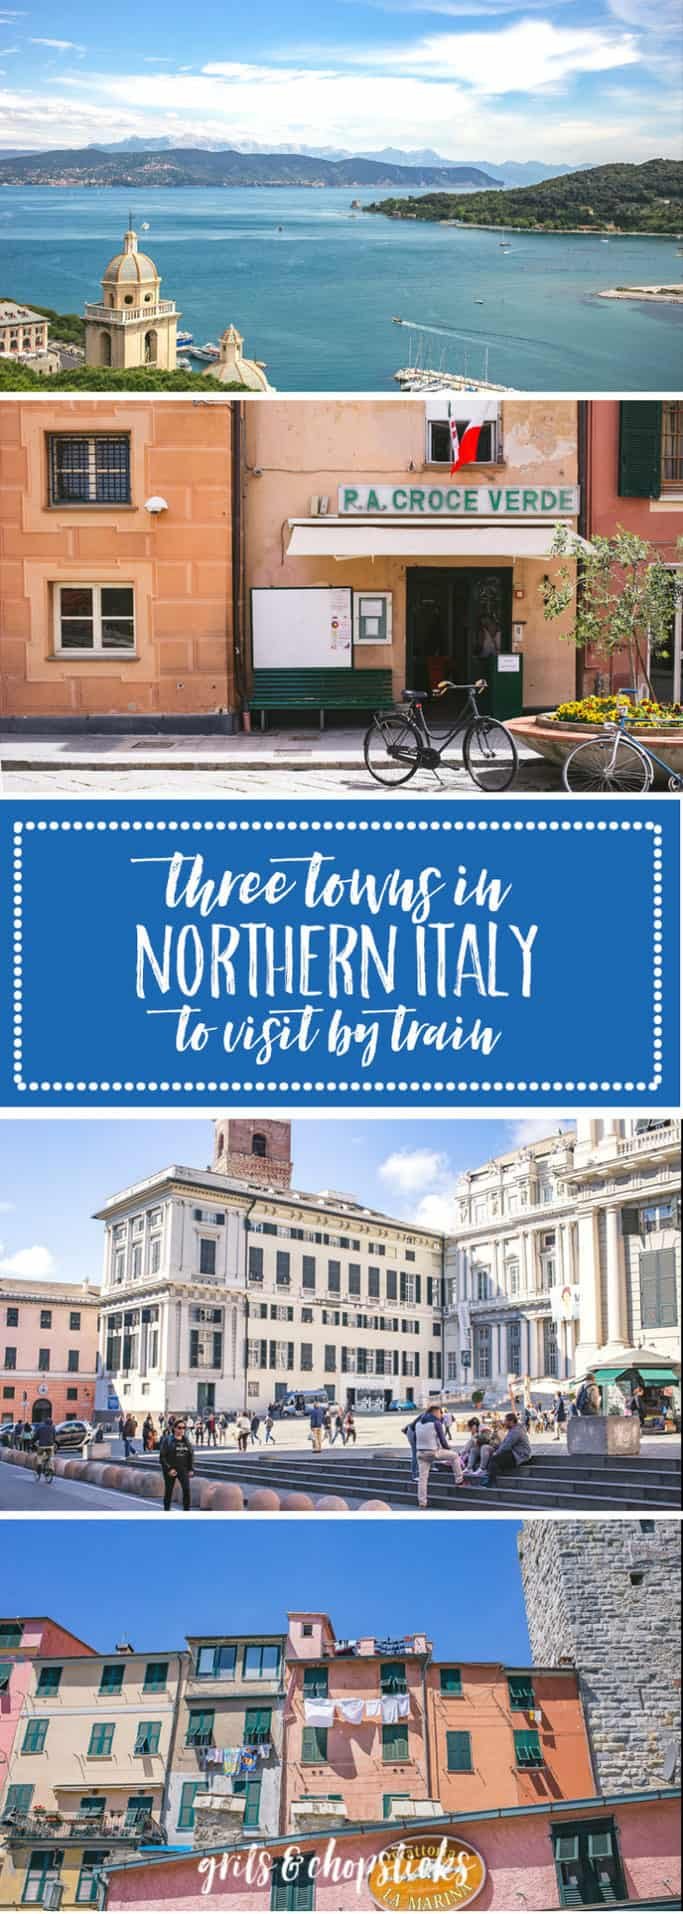 three towns in northern italy to travel to by train